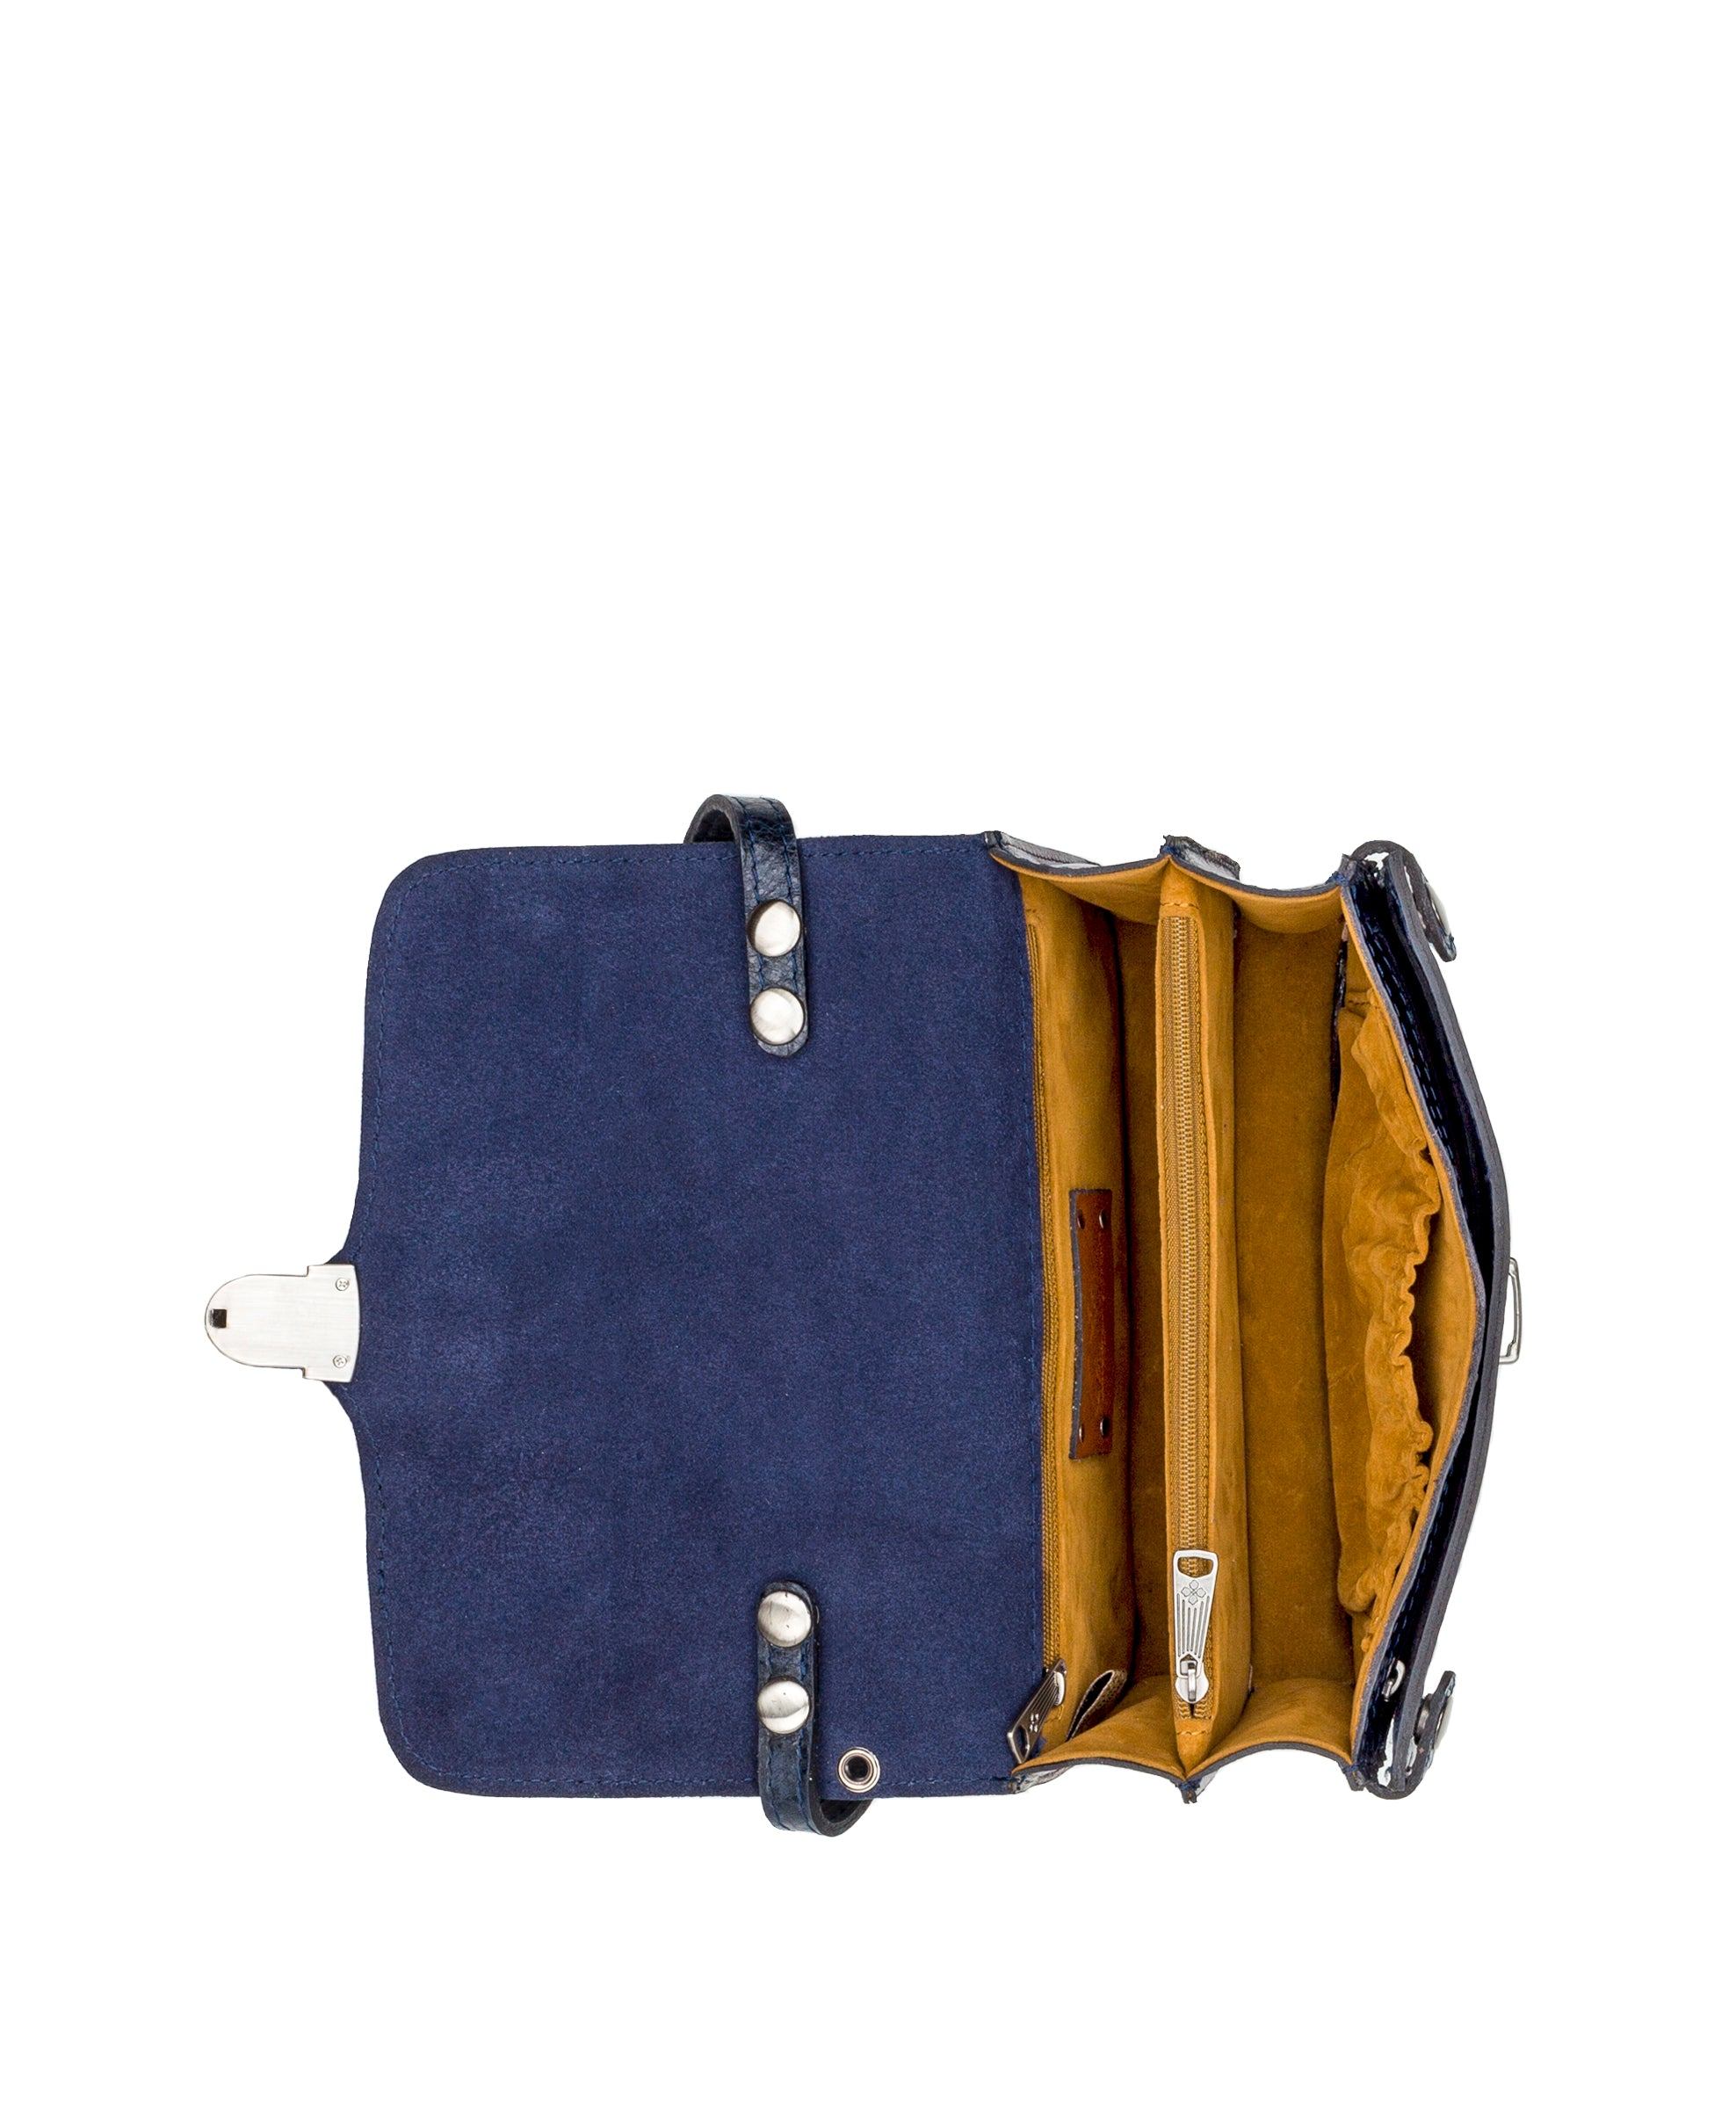 Bianco Crossbody Organizer - Metallic Tobacco Fields Navy 4